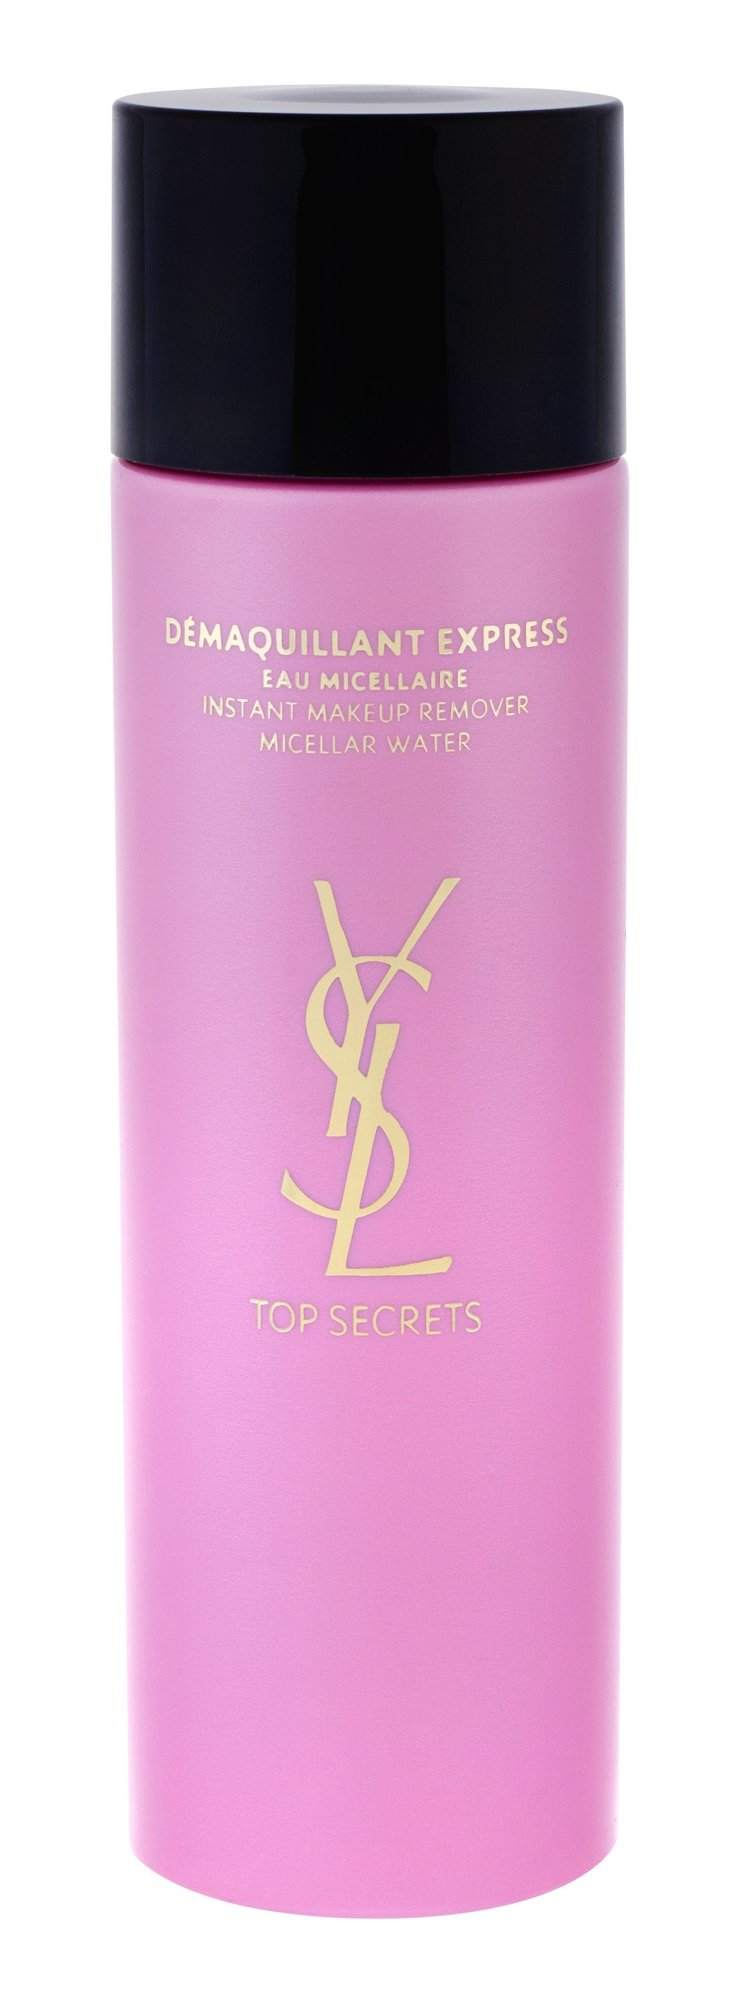 Yves Saint Laurent Top Secrets Cosmetic 200ml